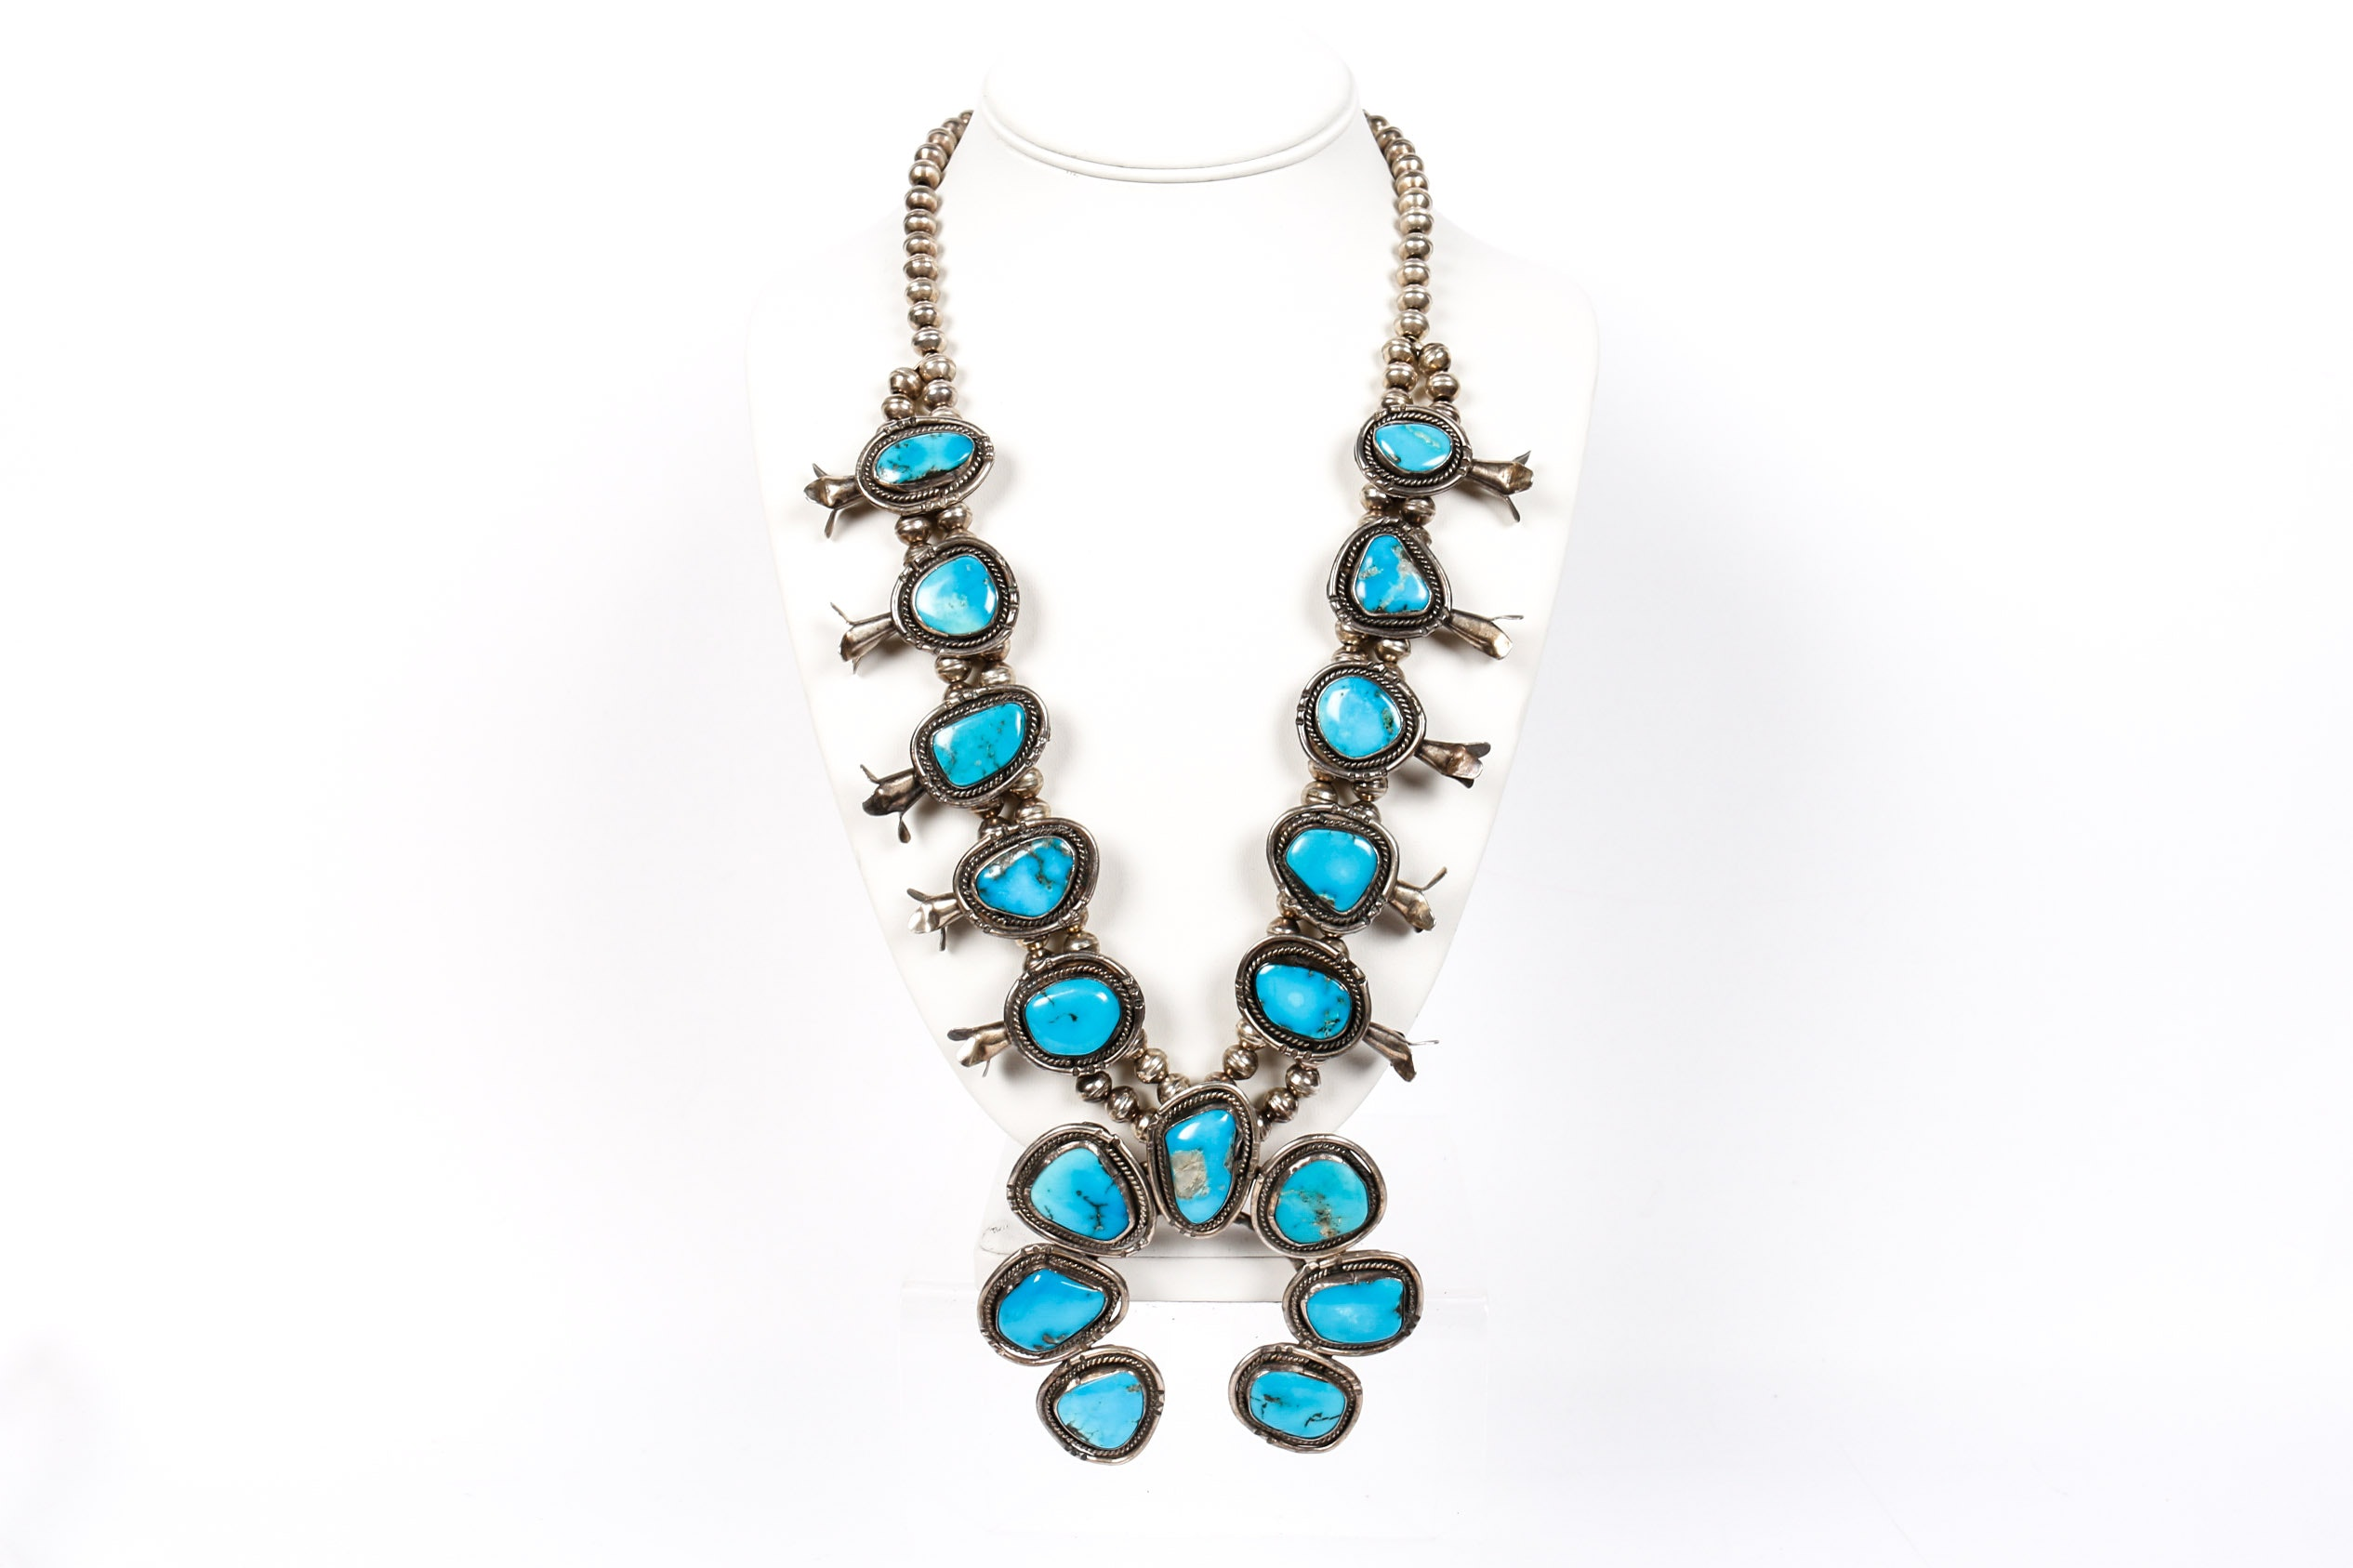 800 Silver Turquoise Squash Blossom Necklace